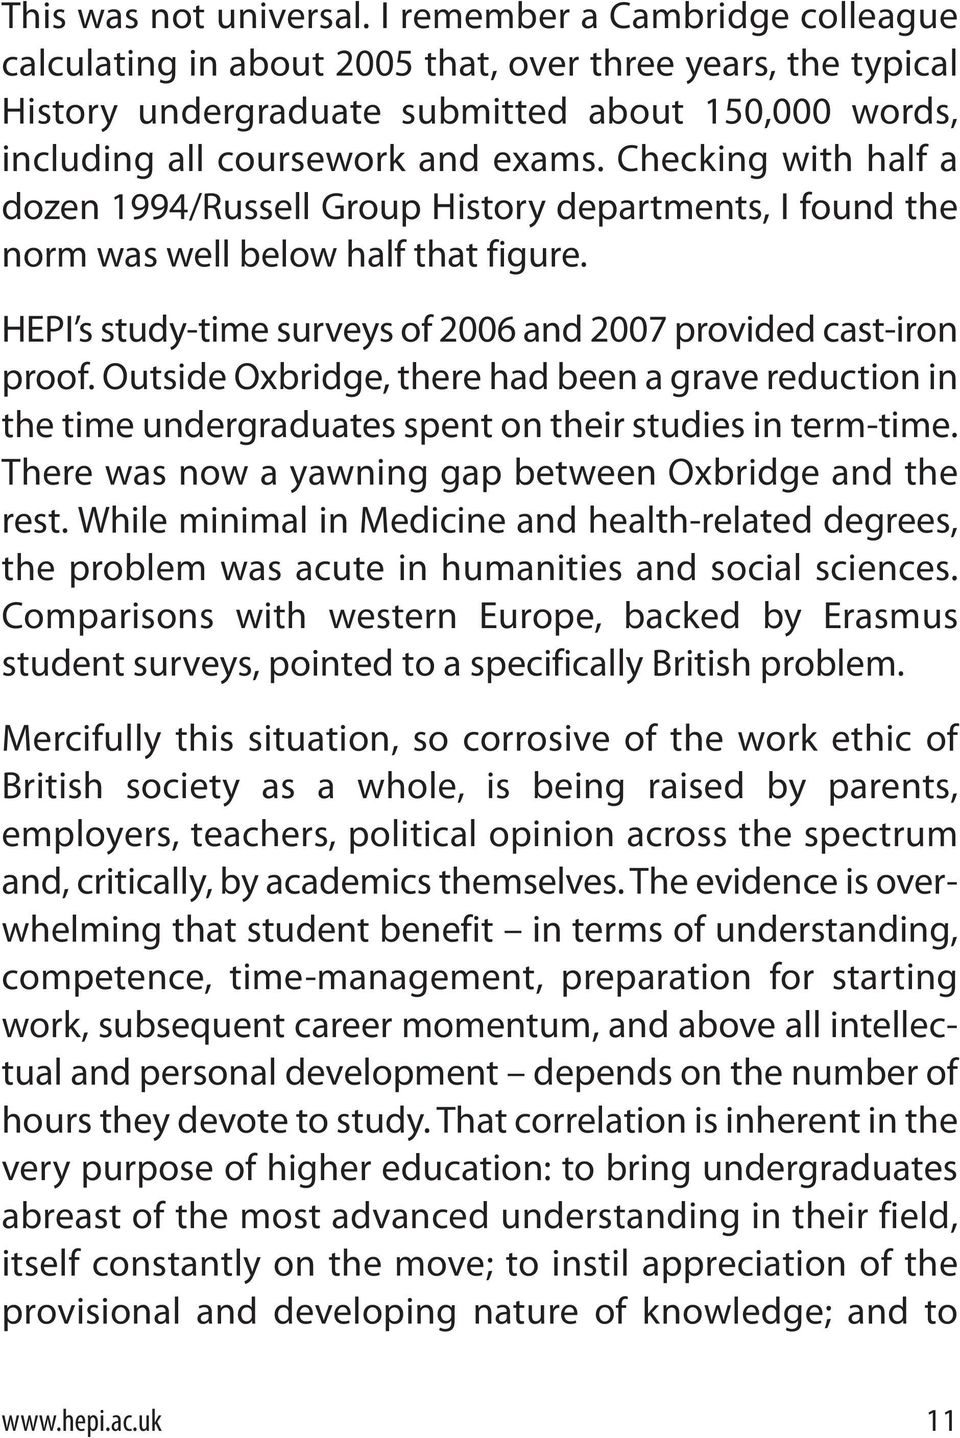 Checking with half a dozen 1994/Russell Group History departments, I found the norm was well below half that figure. HEPI s study-time surveys of 2006 and 2007 provided cast-iron proof.